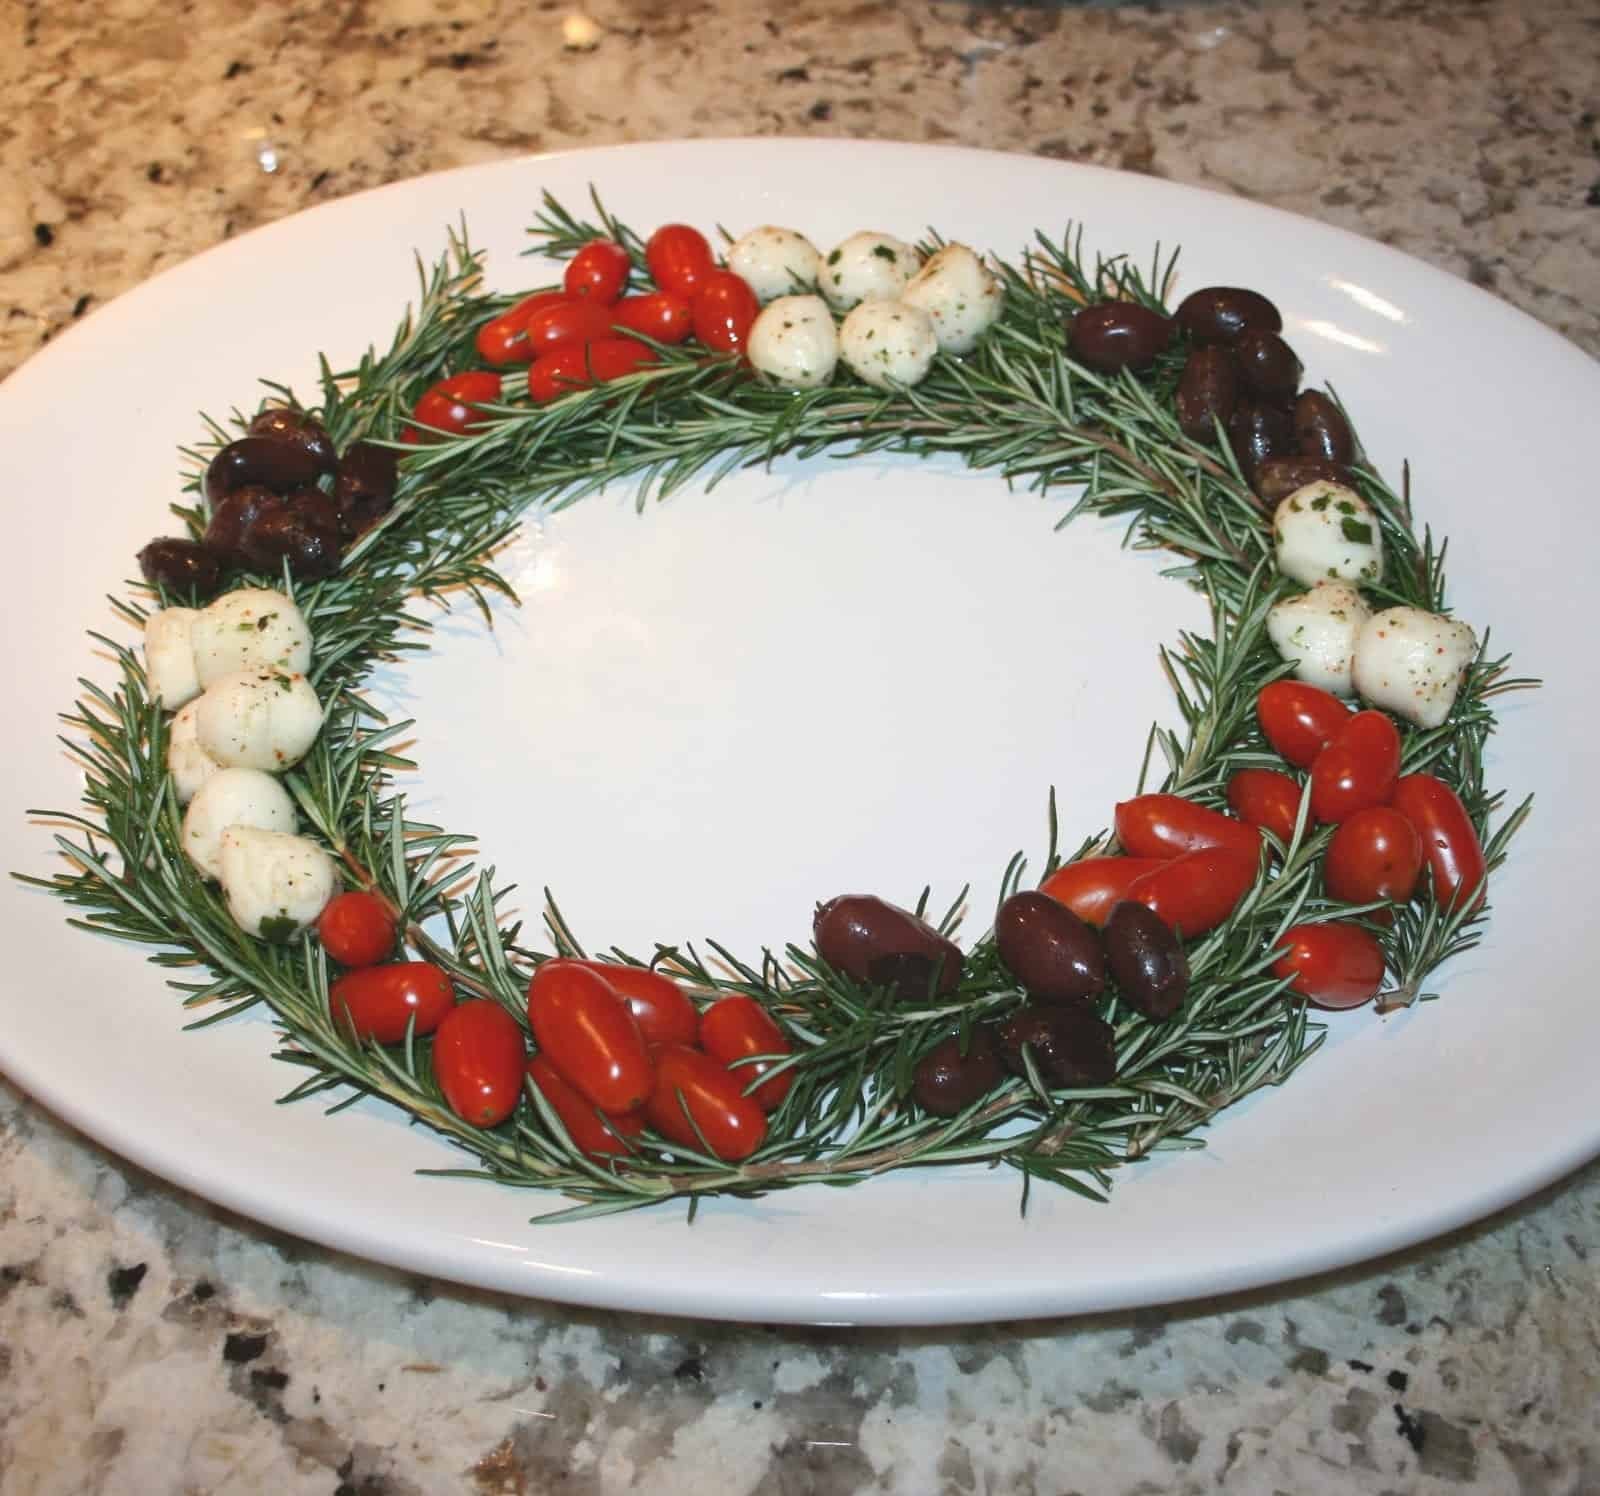 Caprese salad and black olive rosemary wreath